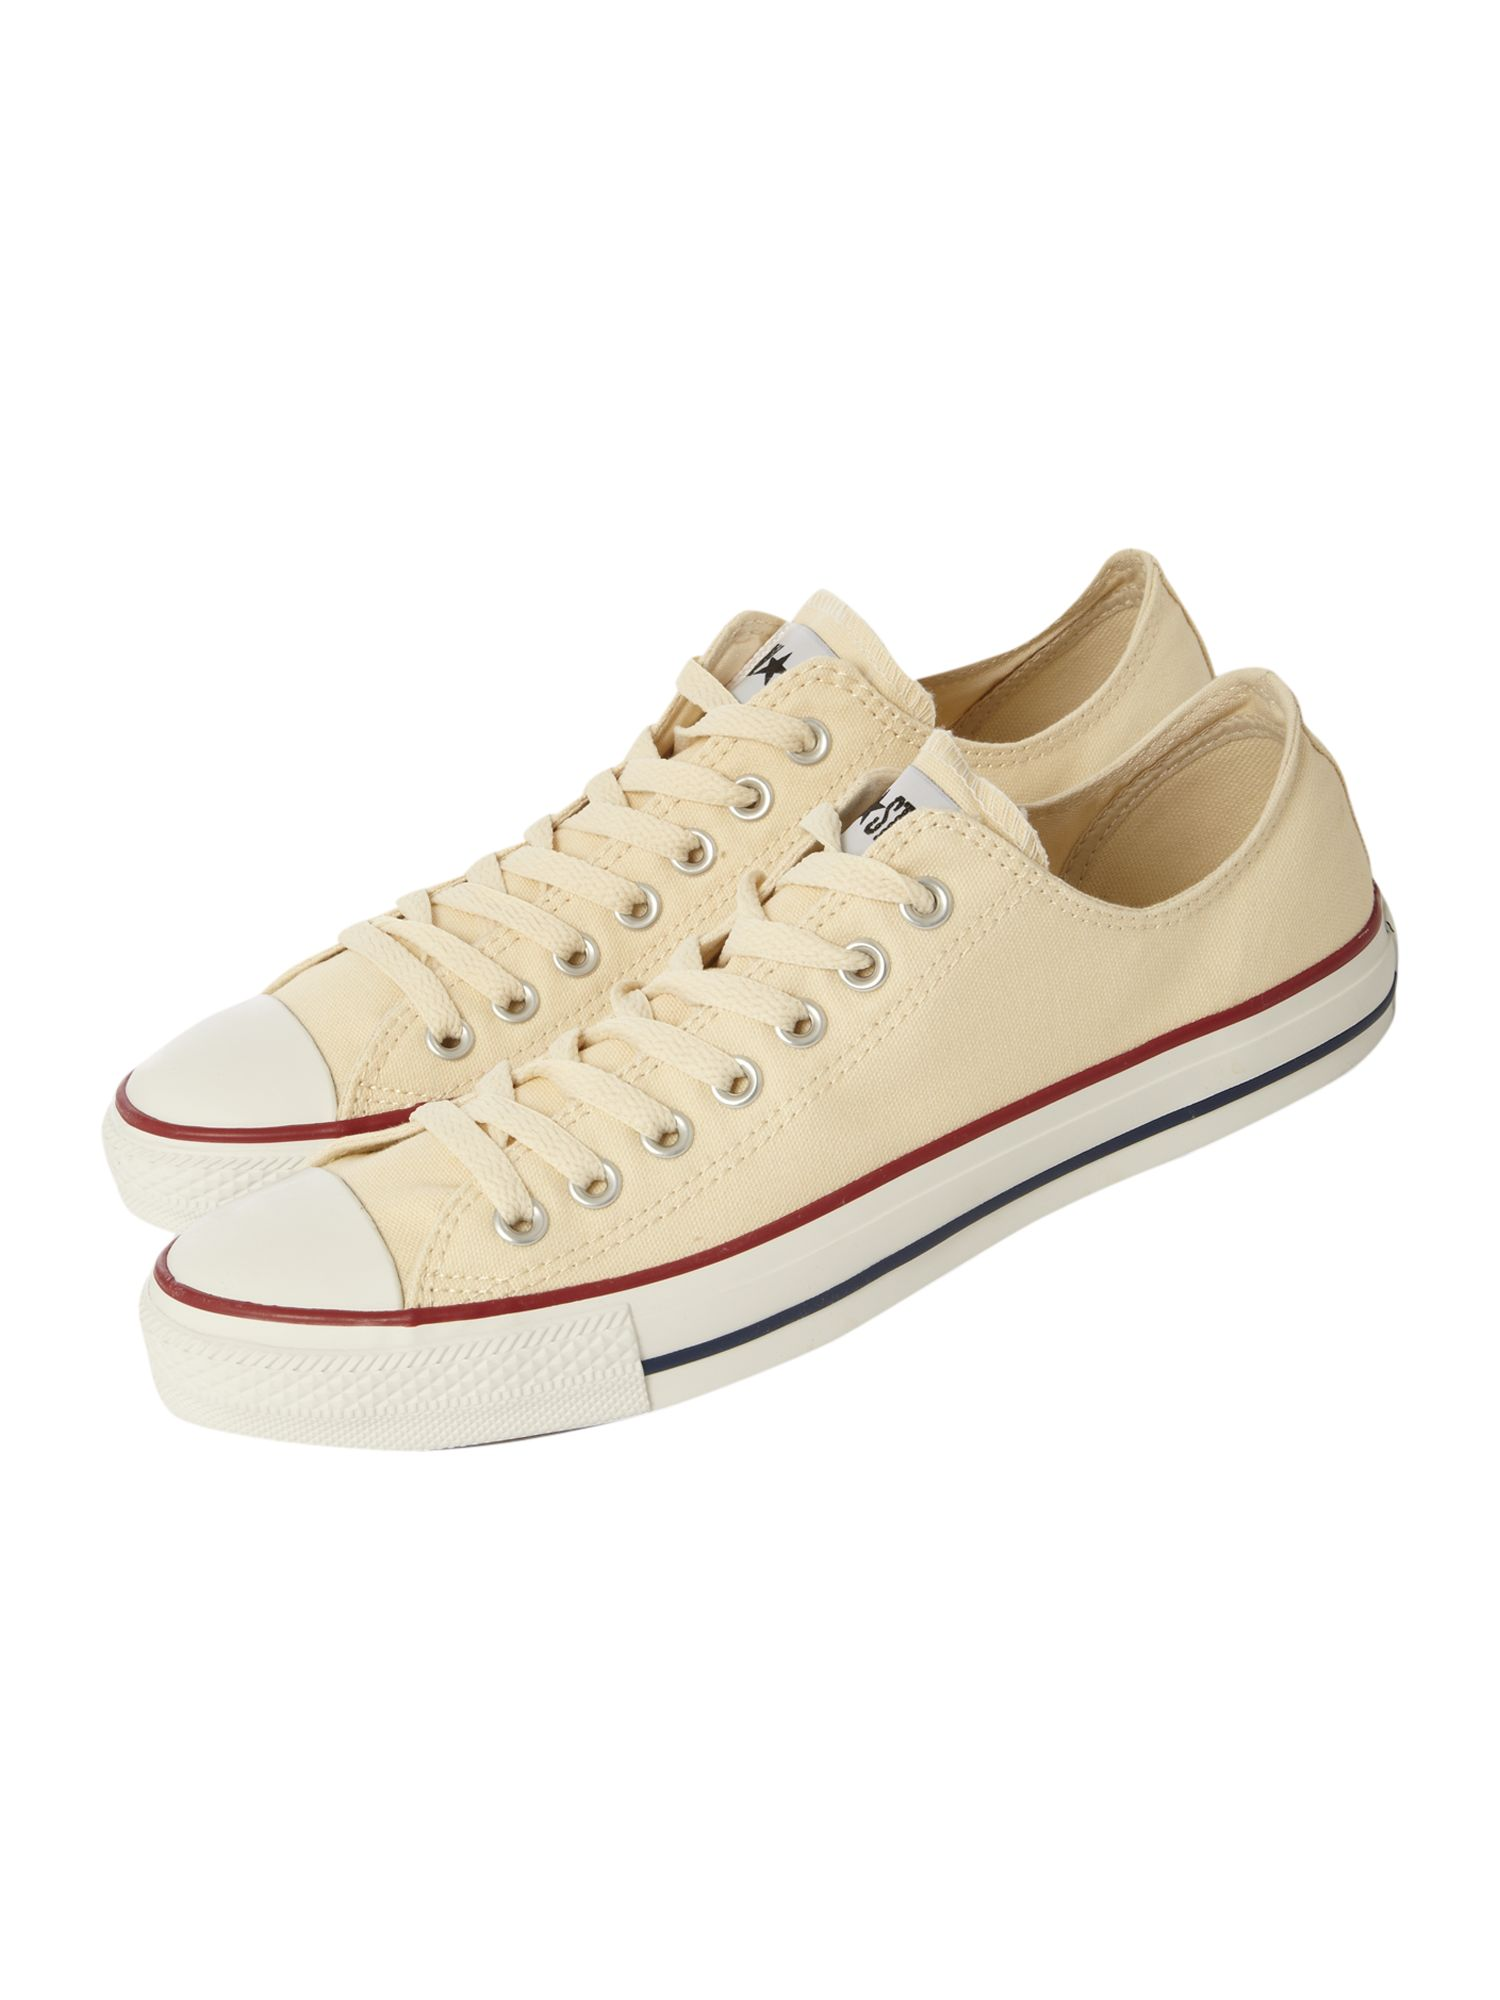 converse chuck taylor all star low top in beige for men. Black Bedroom Furniture Sets. Home Design Ideas